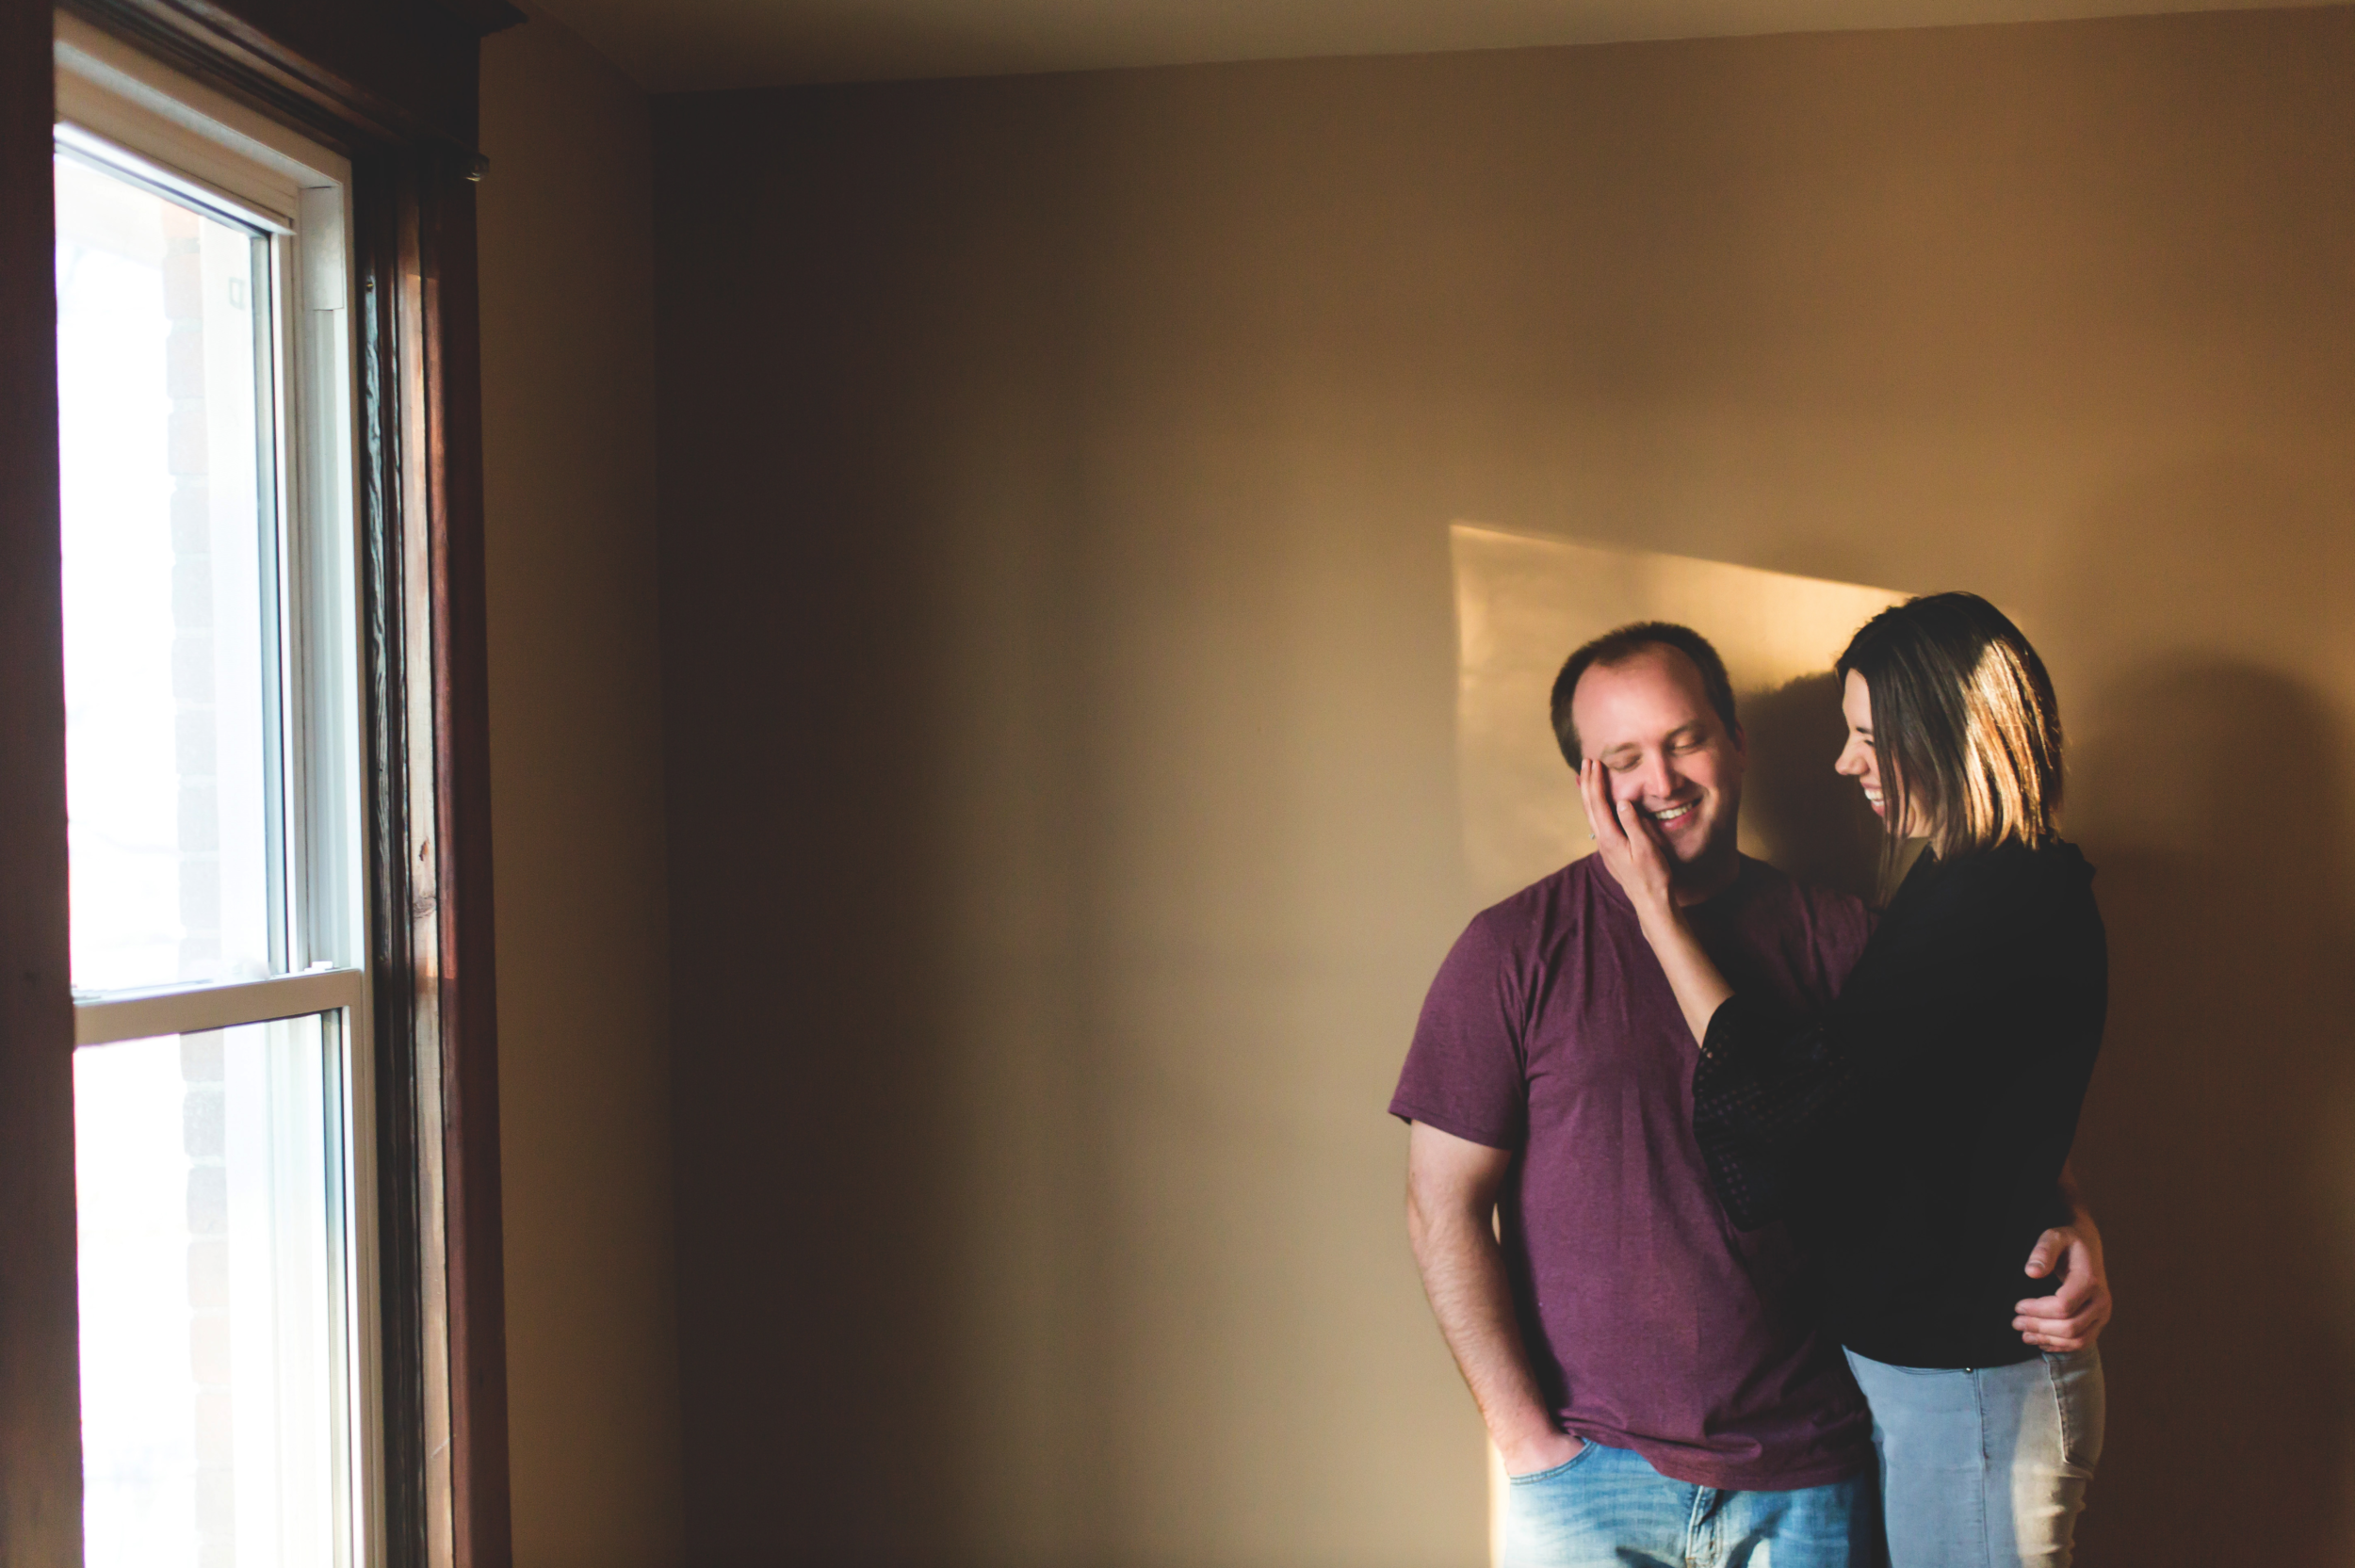 At-Home-Engagement-Session-Photography-Hamilton-Burlington-Niagara-Toronto-Wedding-Photography-Cozy-Engaged-Moments-by-Lauren-Photo-Image-21.png